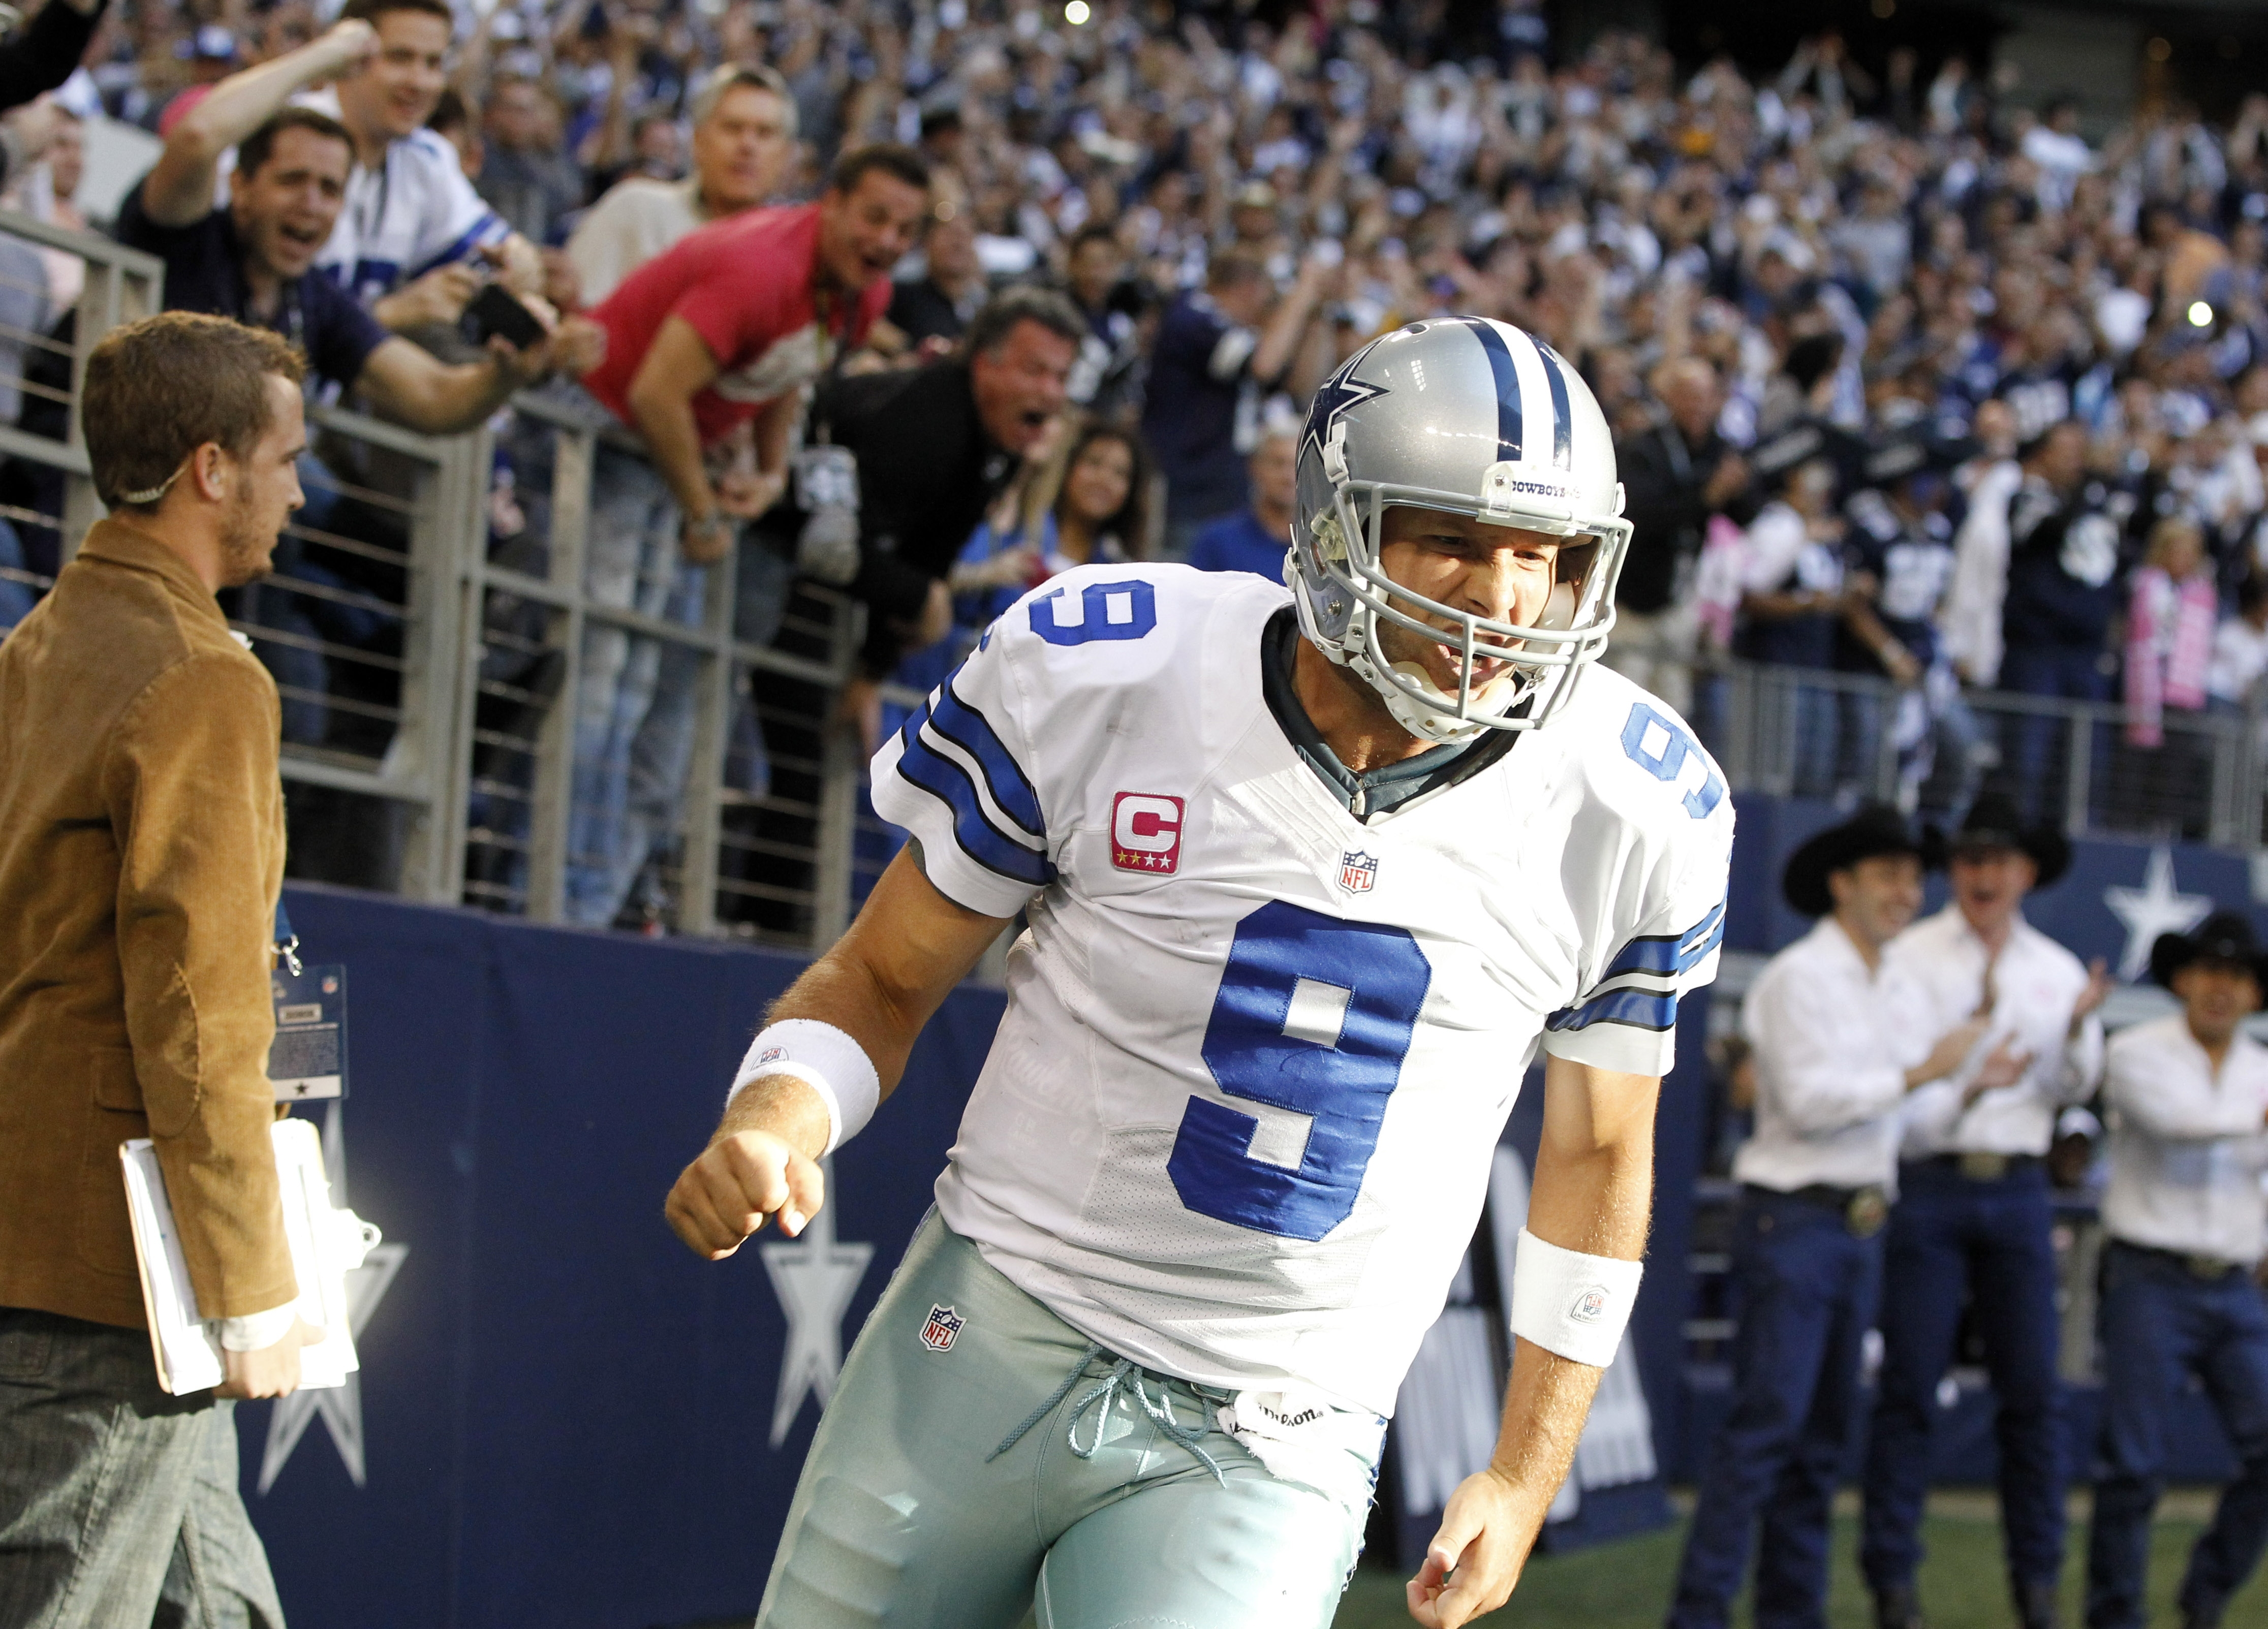 Dallas Cowboys 2016 Super Bowl Run Starts With Tony Romo ✭ intended for Tony Romo Super Bowl